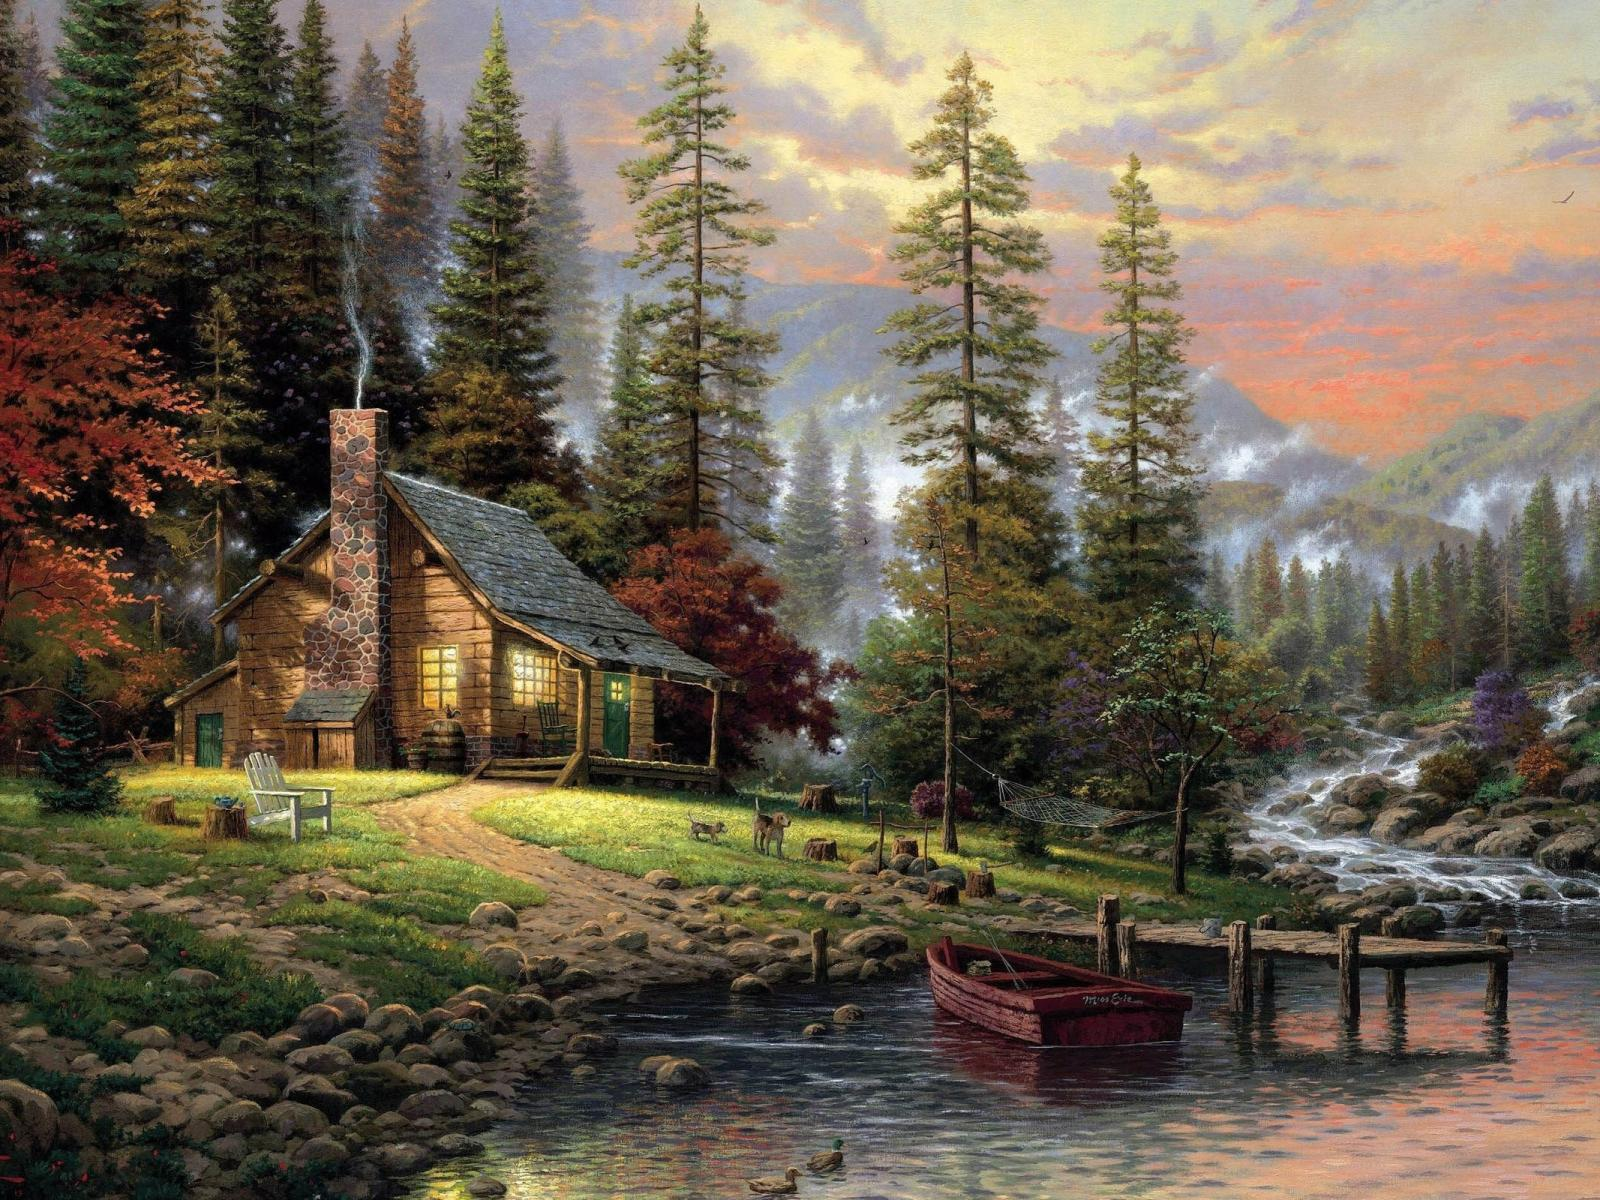 Painting Digital art desktop wallpapers 800x600 Chalet Painting 1600x1200